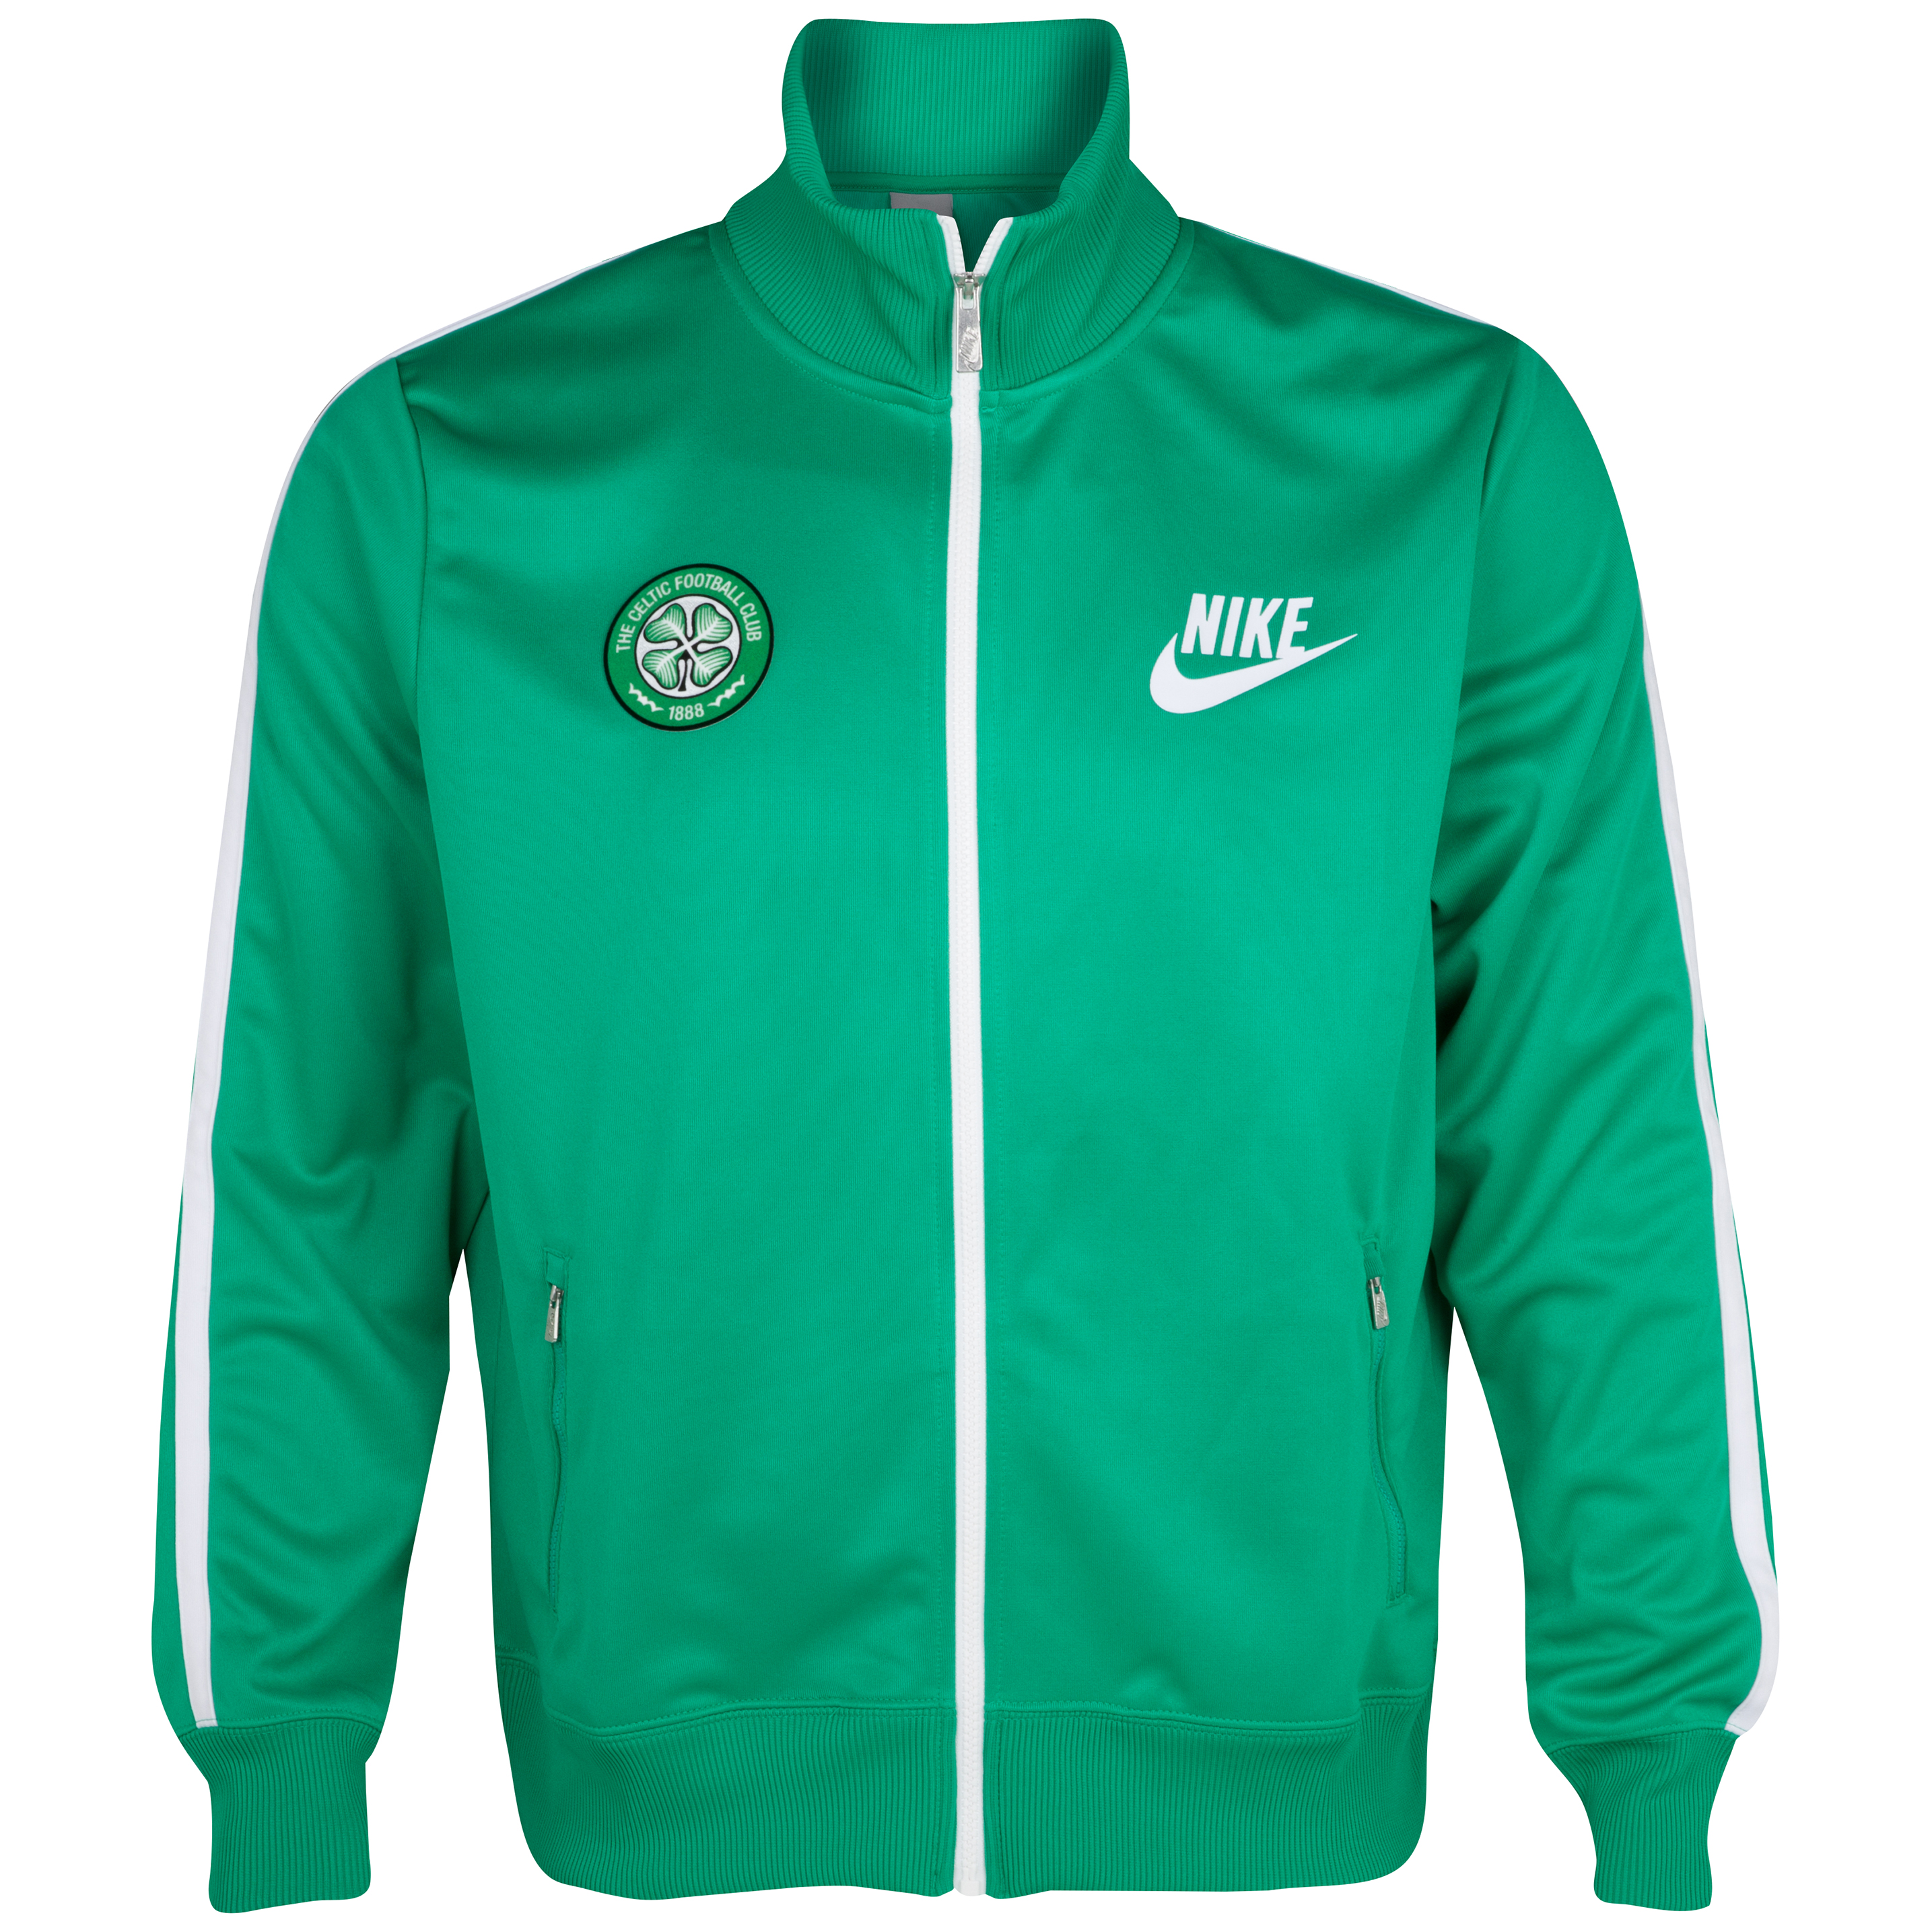 Celtic Limitless Track Jacket - Stadium Green/White